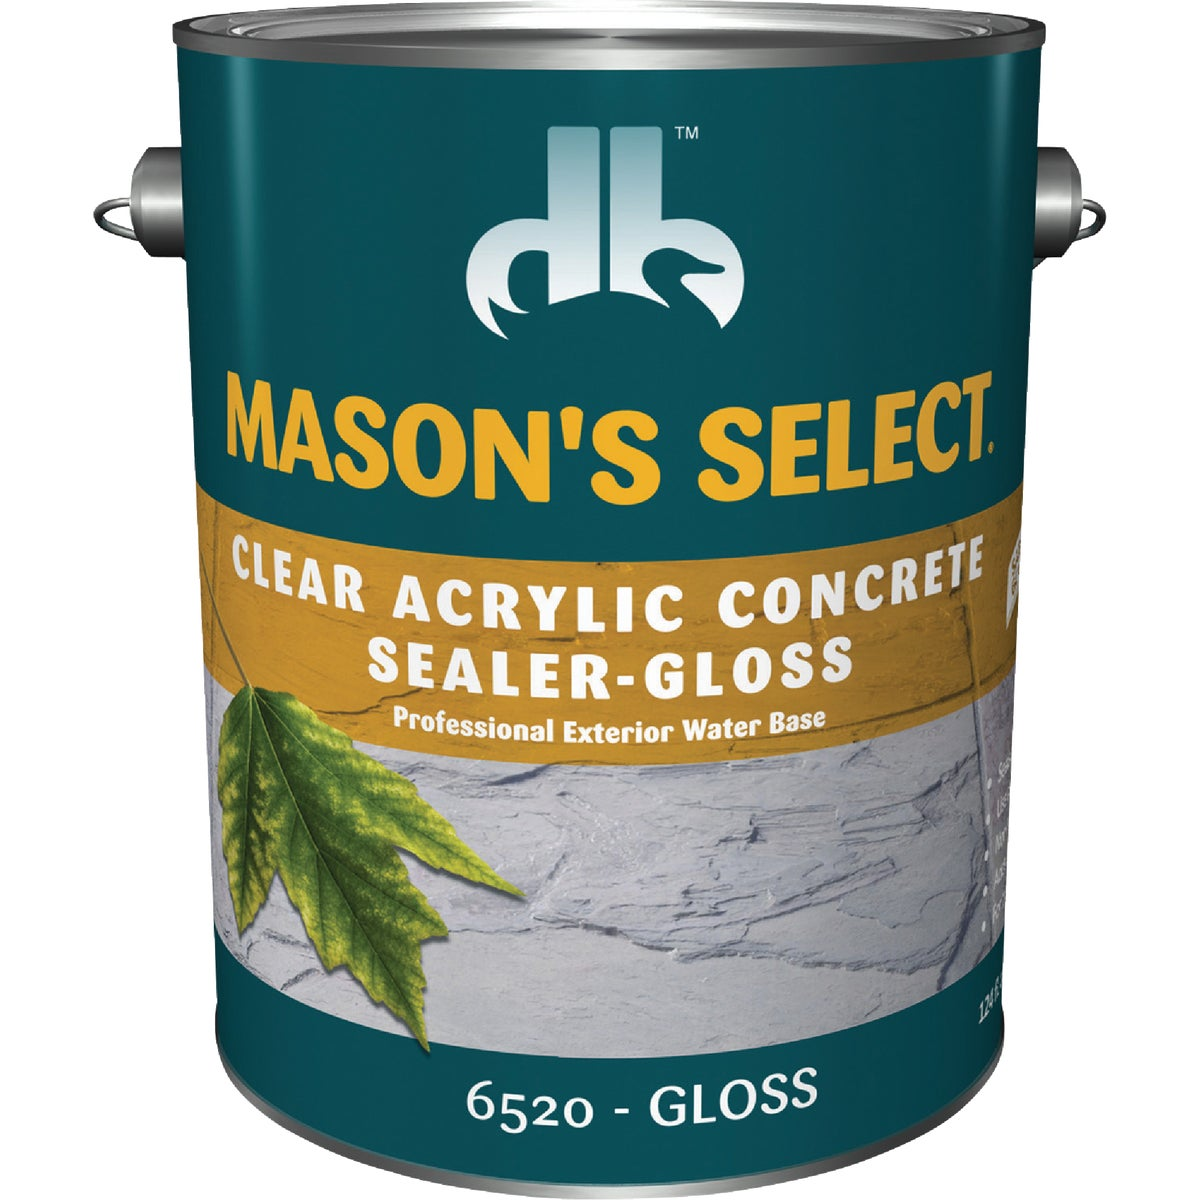 GLS CLR CONCRETE SEALER - DB6520-4 by Duckback Prod